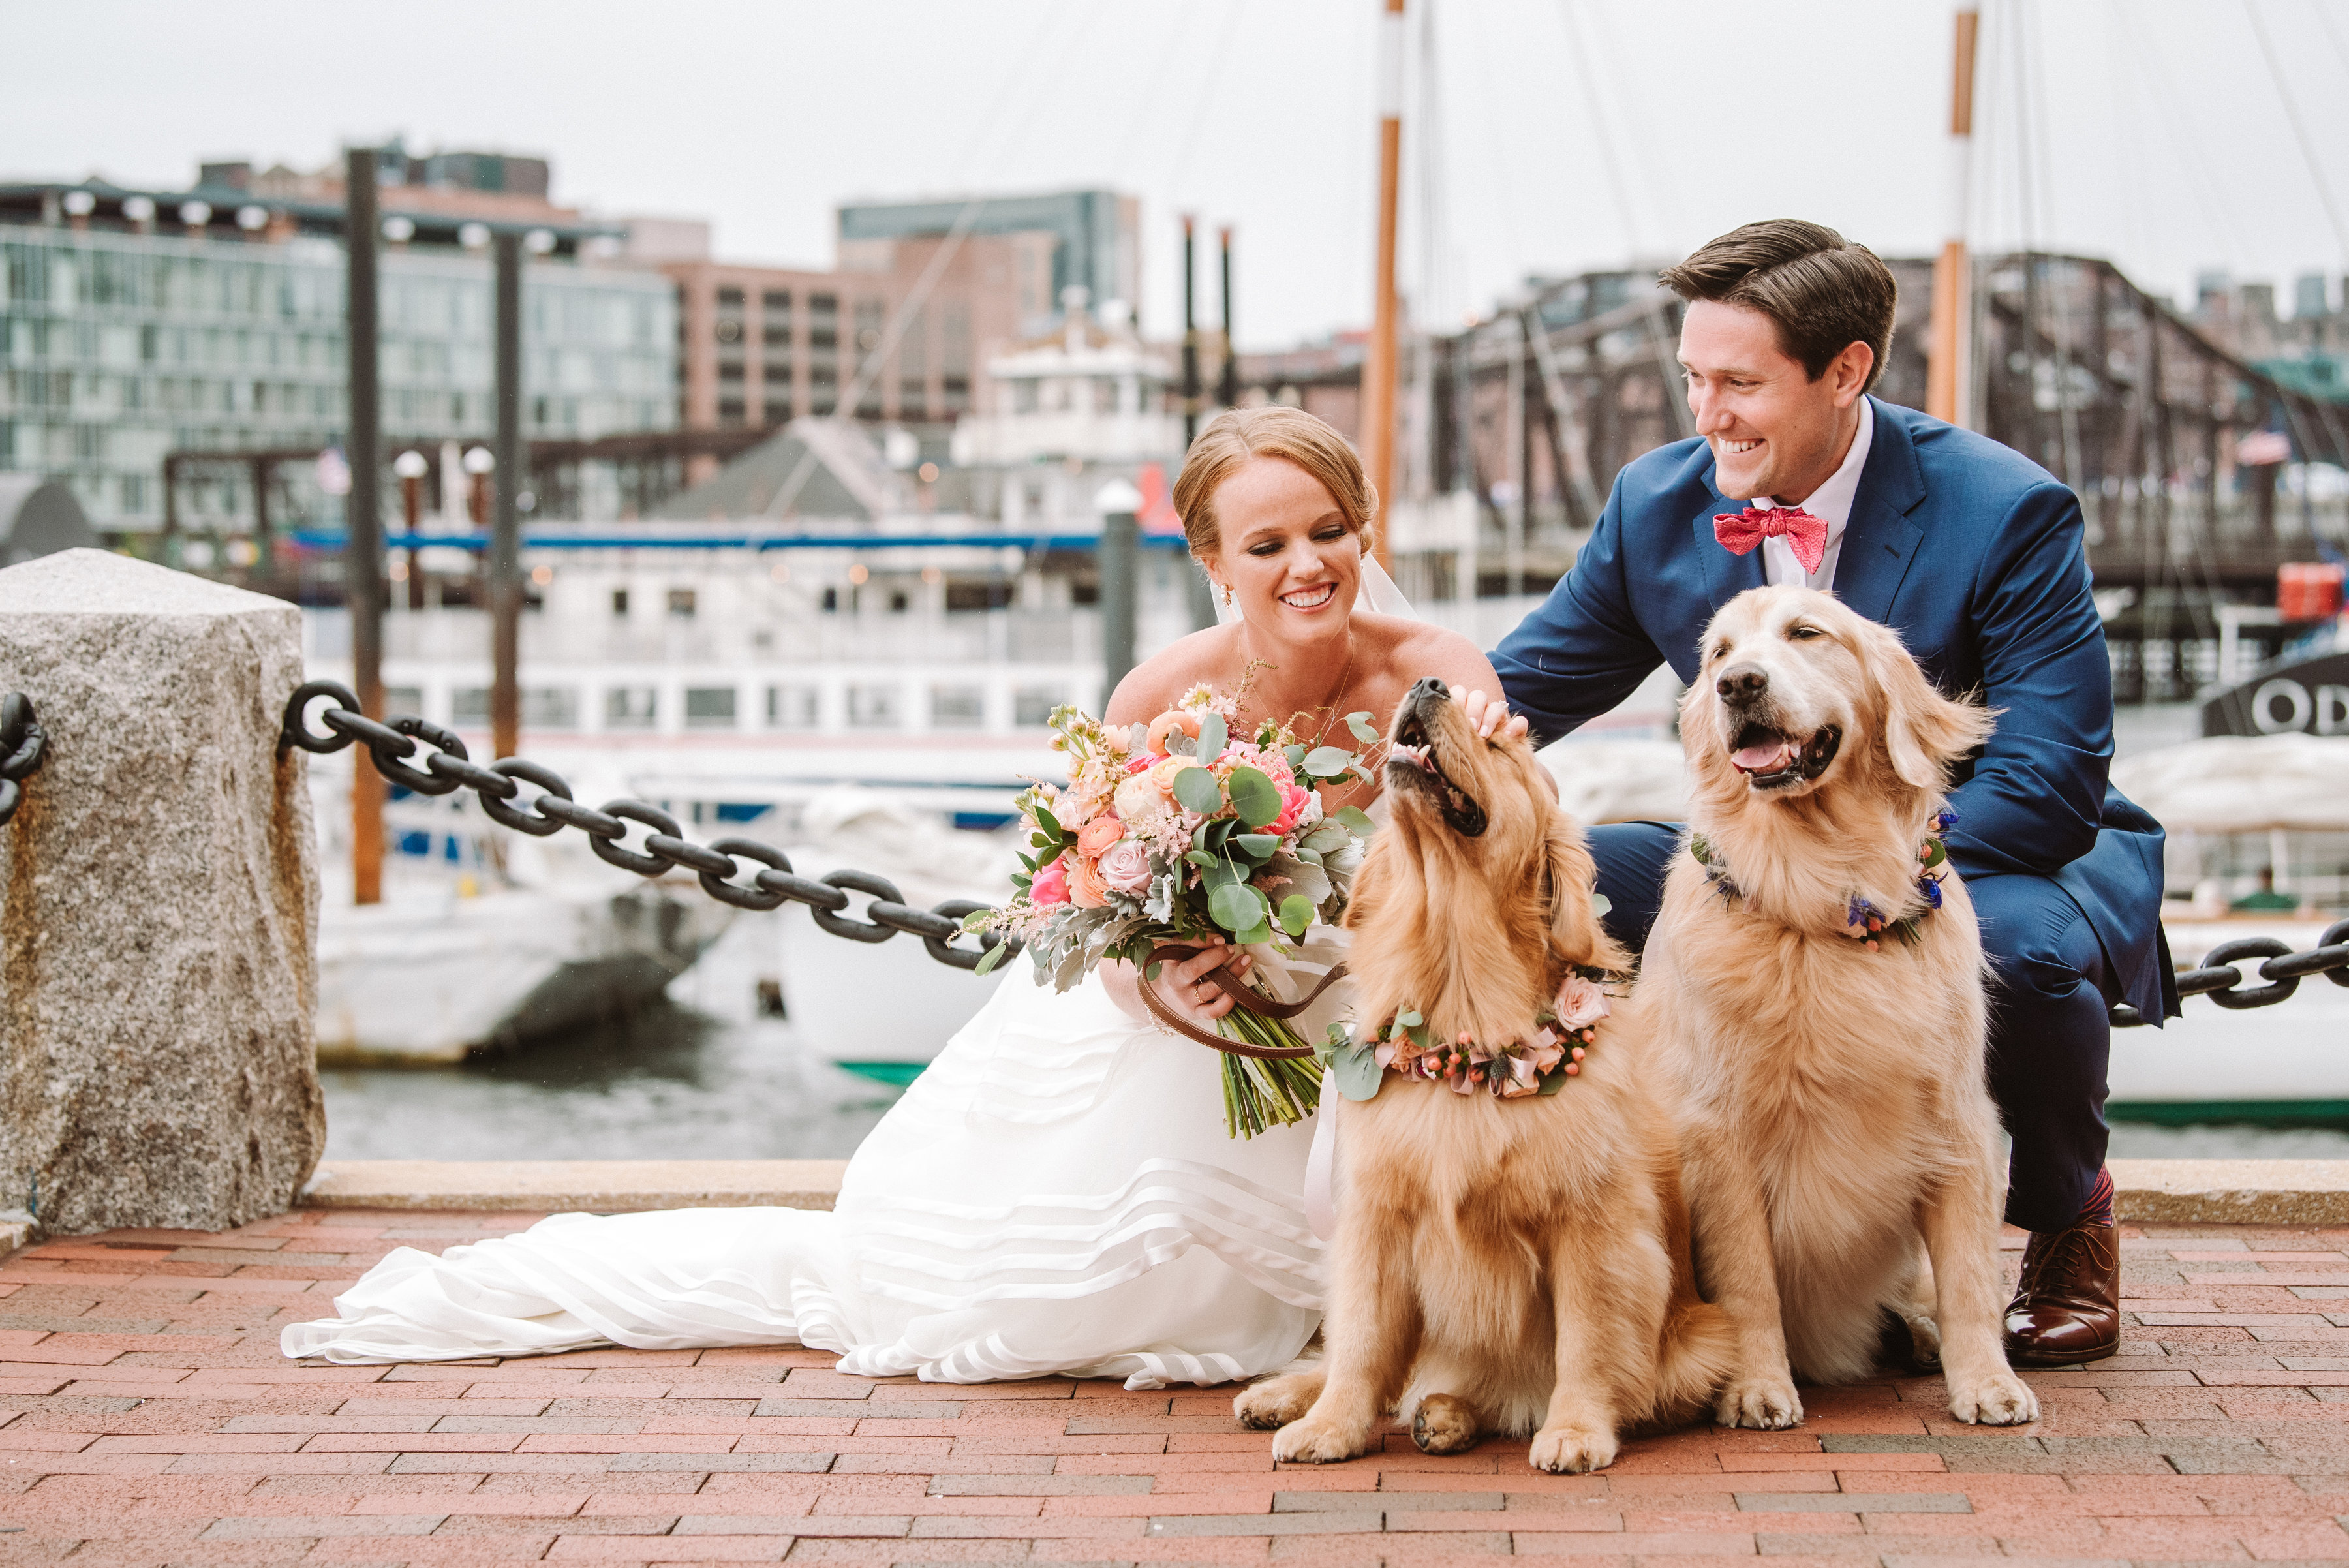 Newlyweds at Boston Harbor with golden retrievers